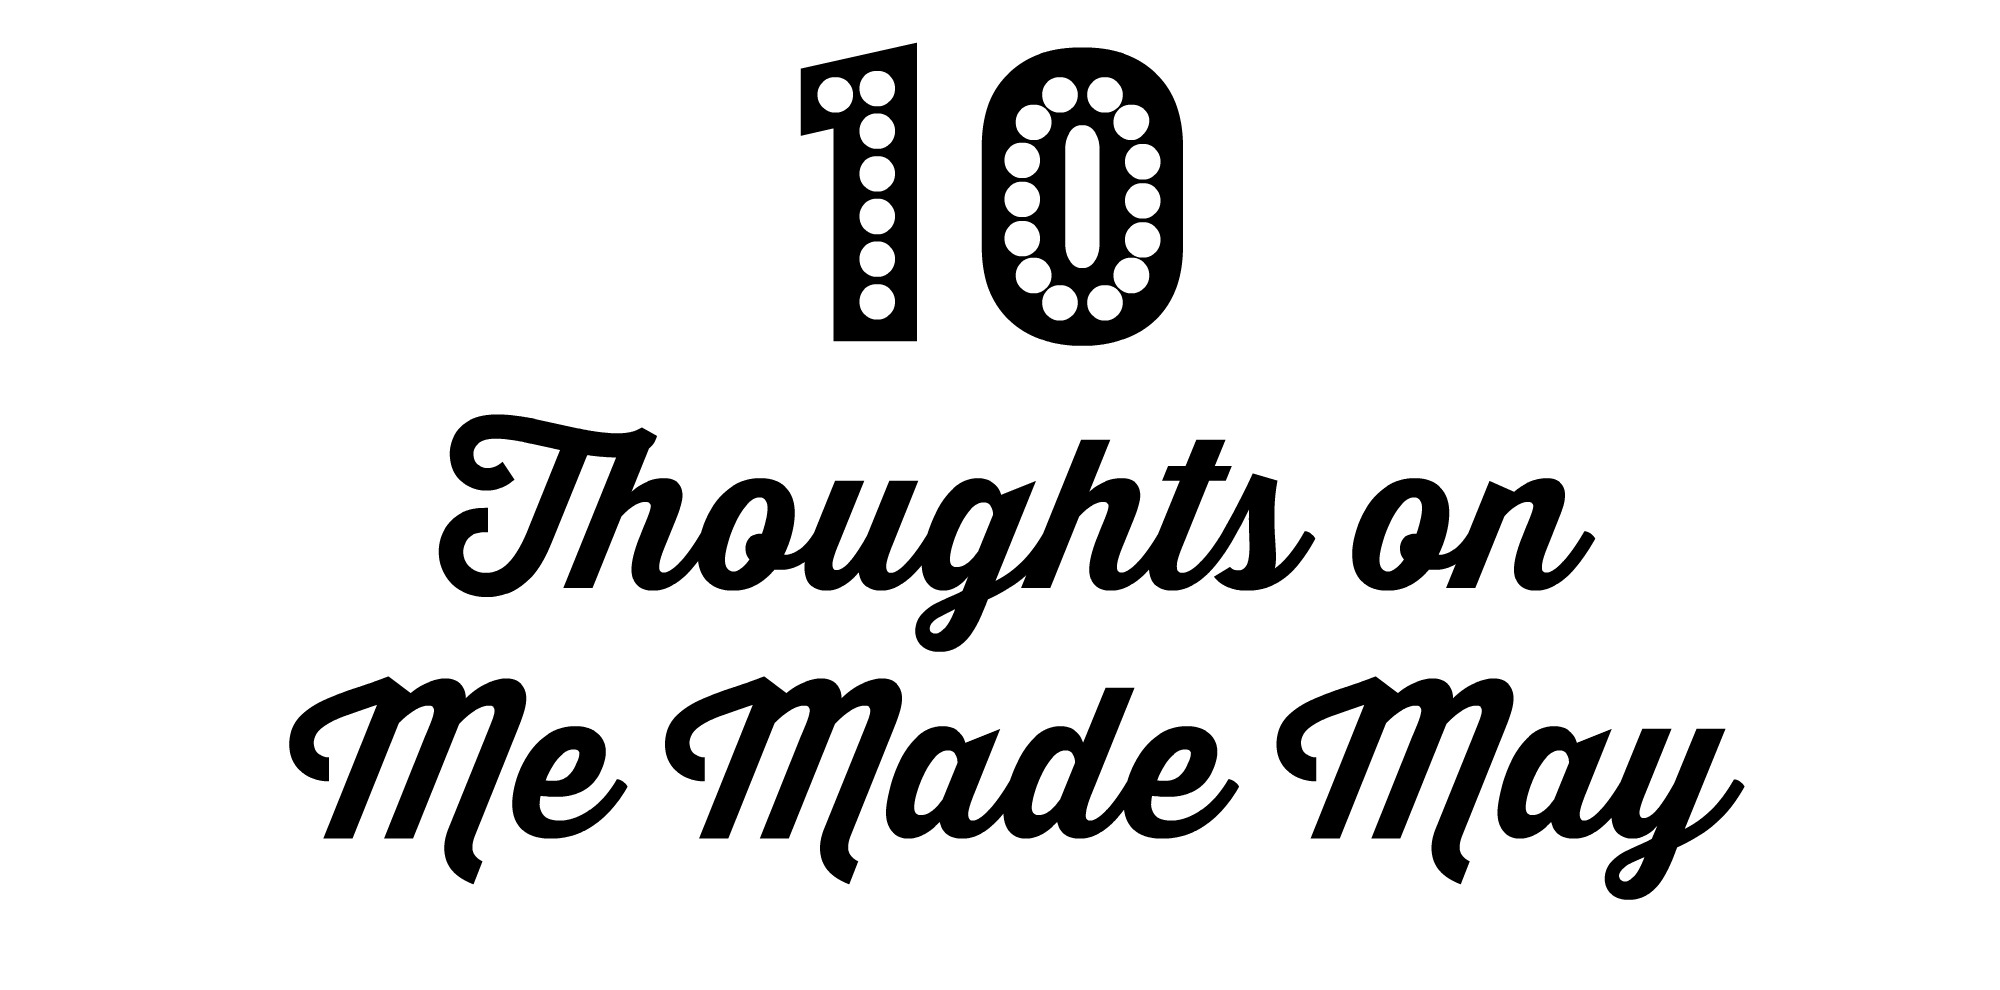 10 thoughts